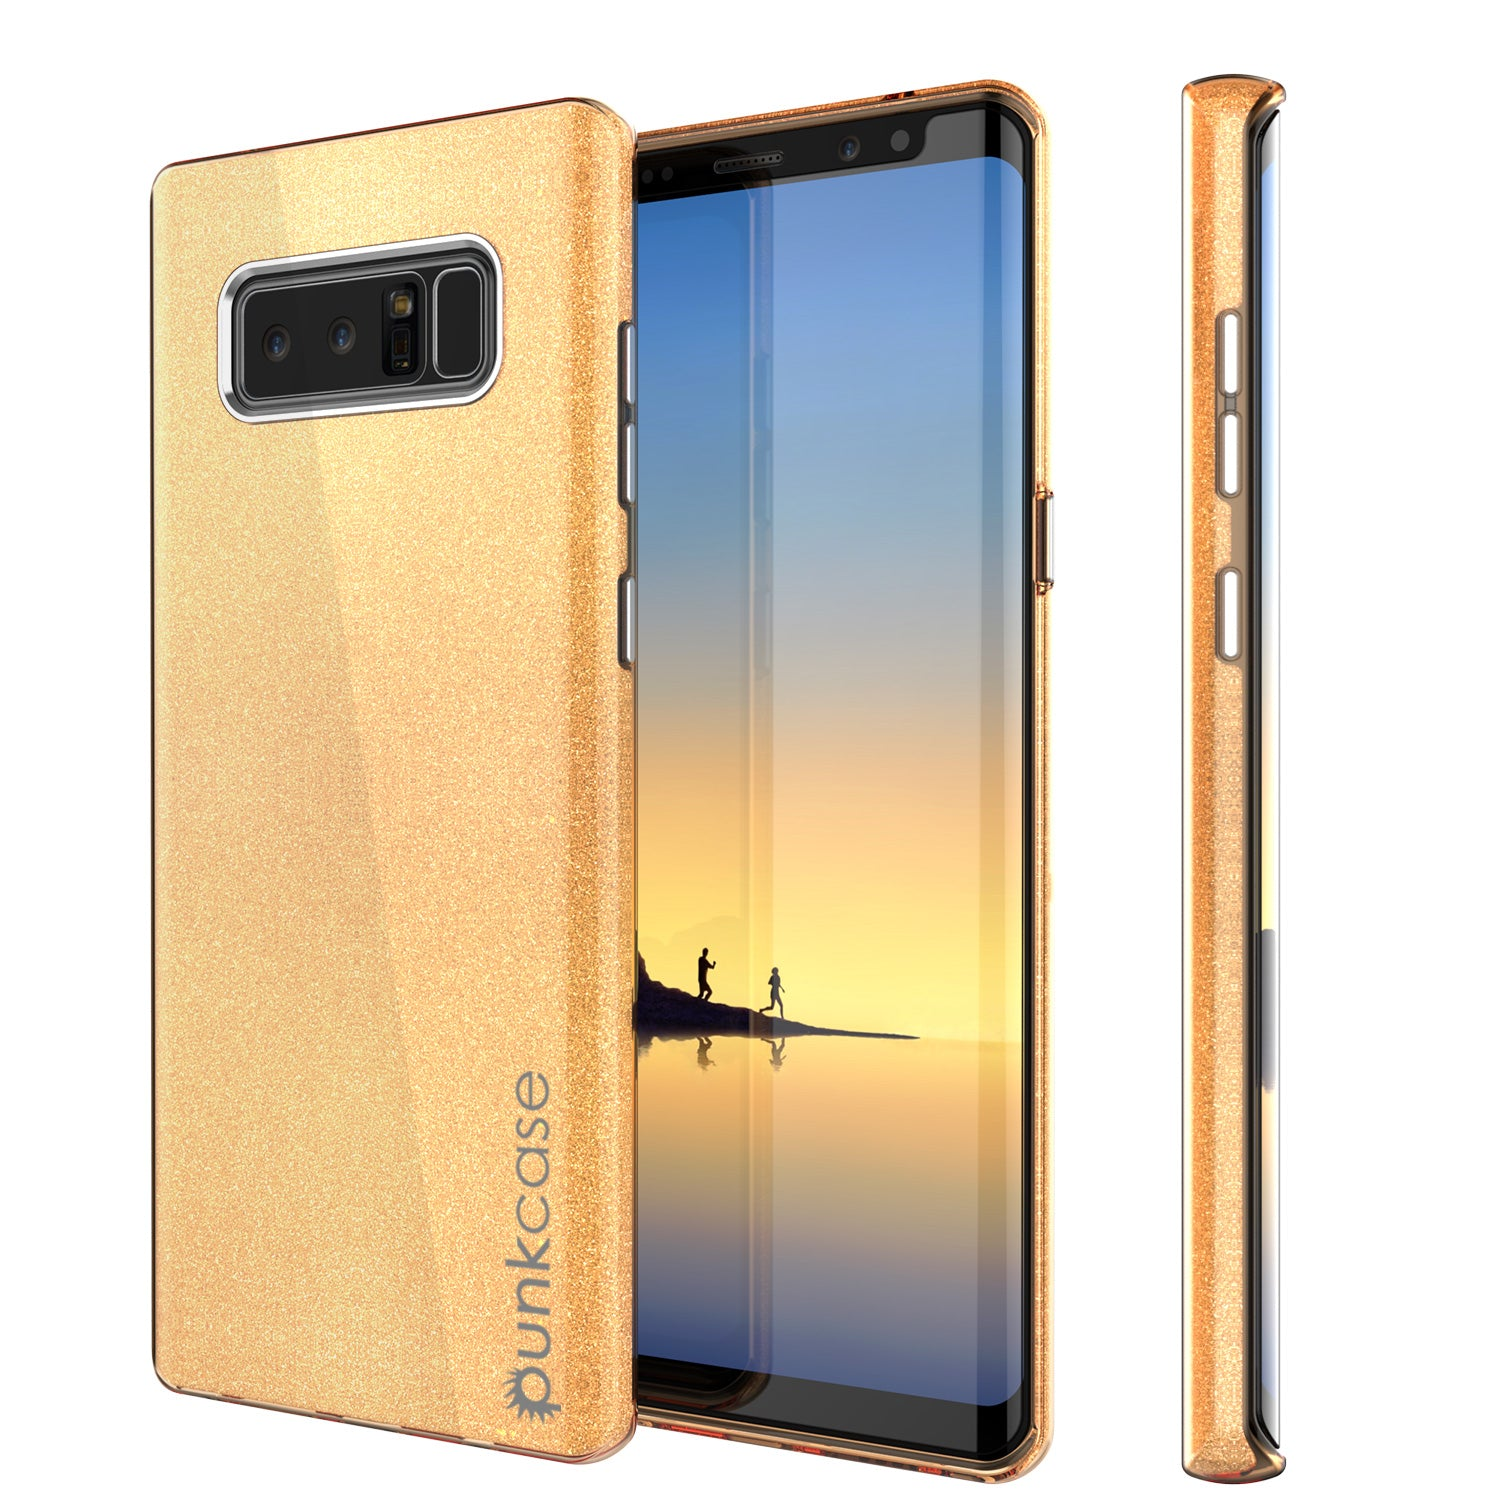 Galaxy Note 8  Punkcase Galactic 2.0 Series Ultra Slim Case [Gold]